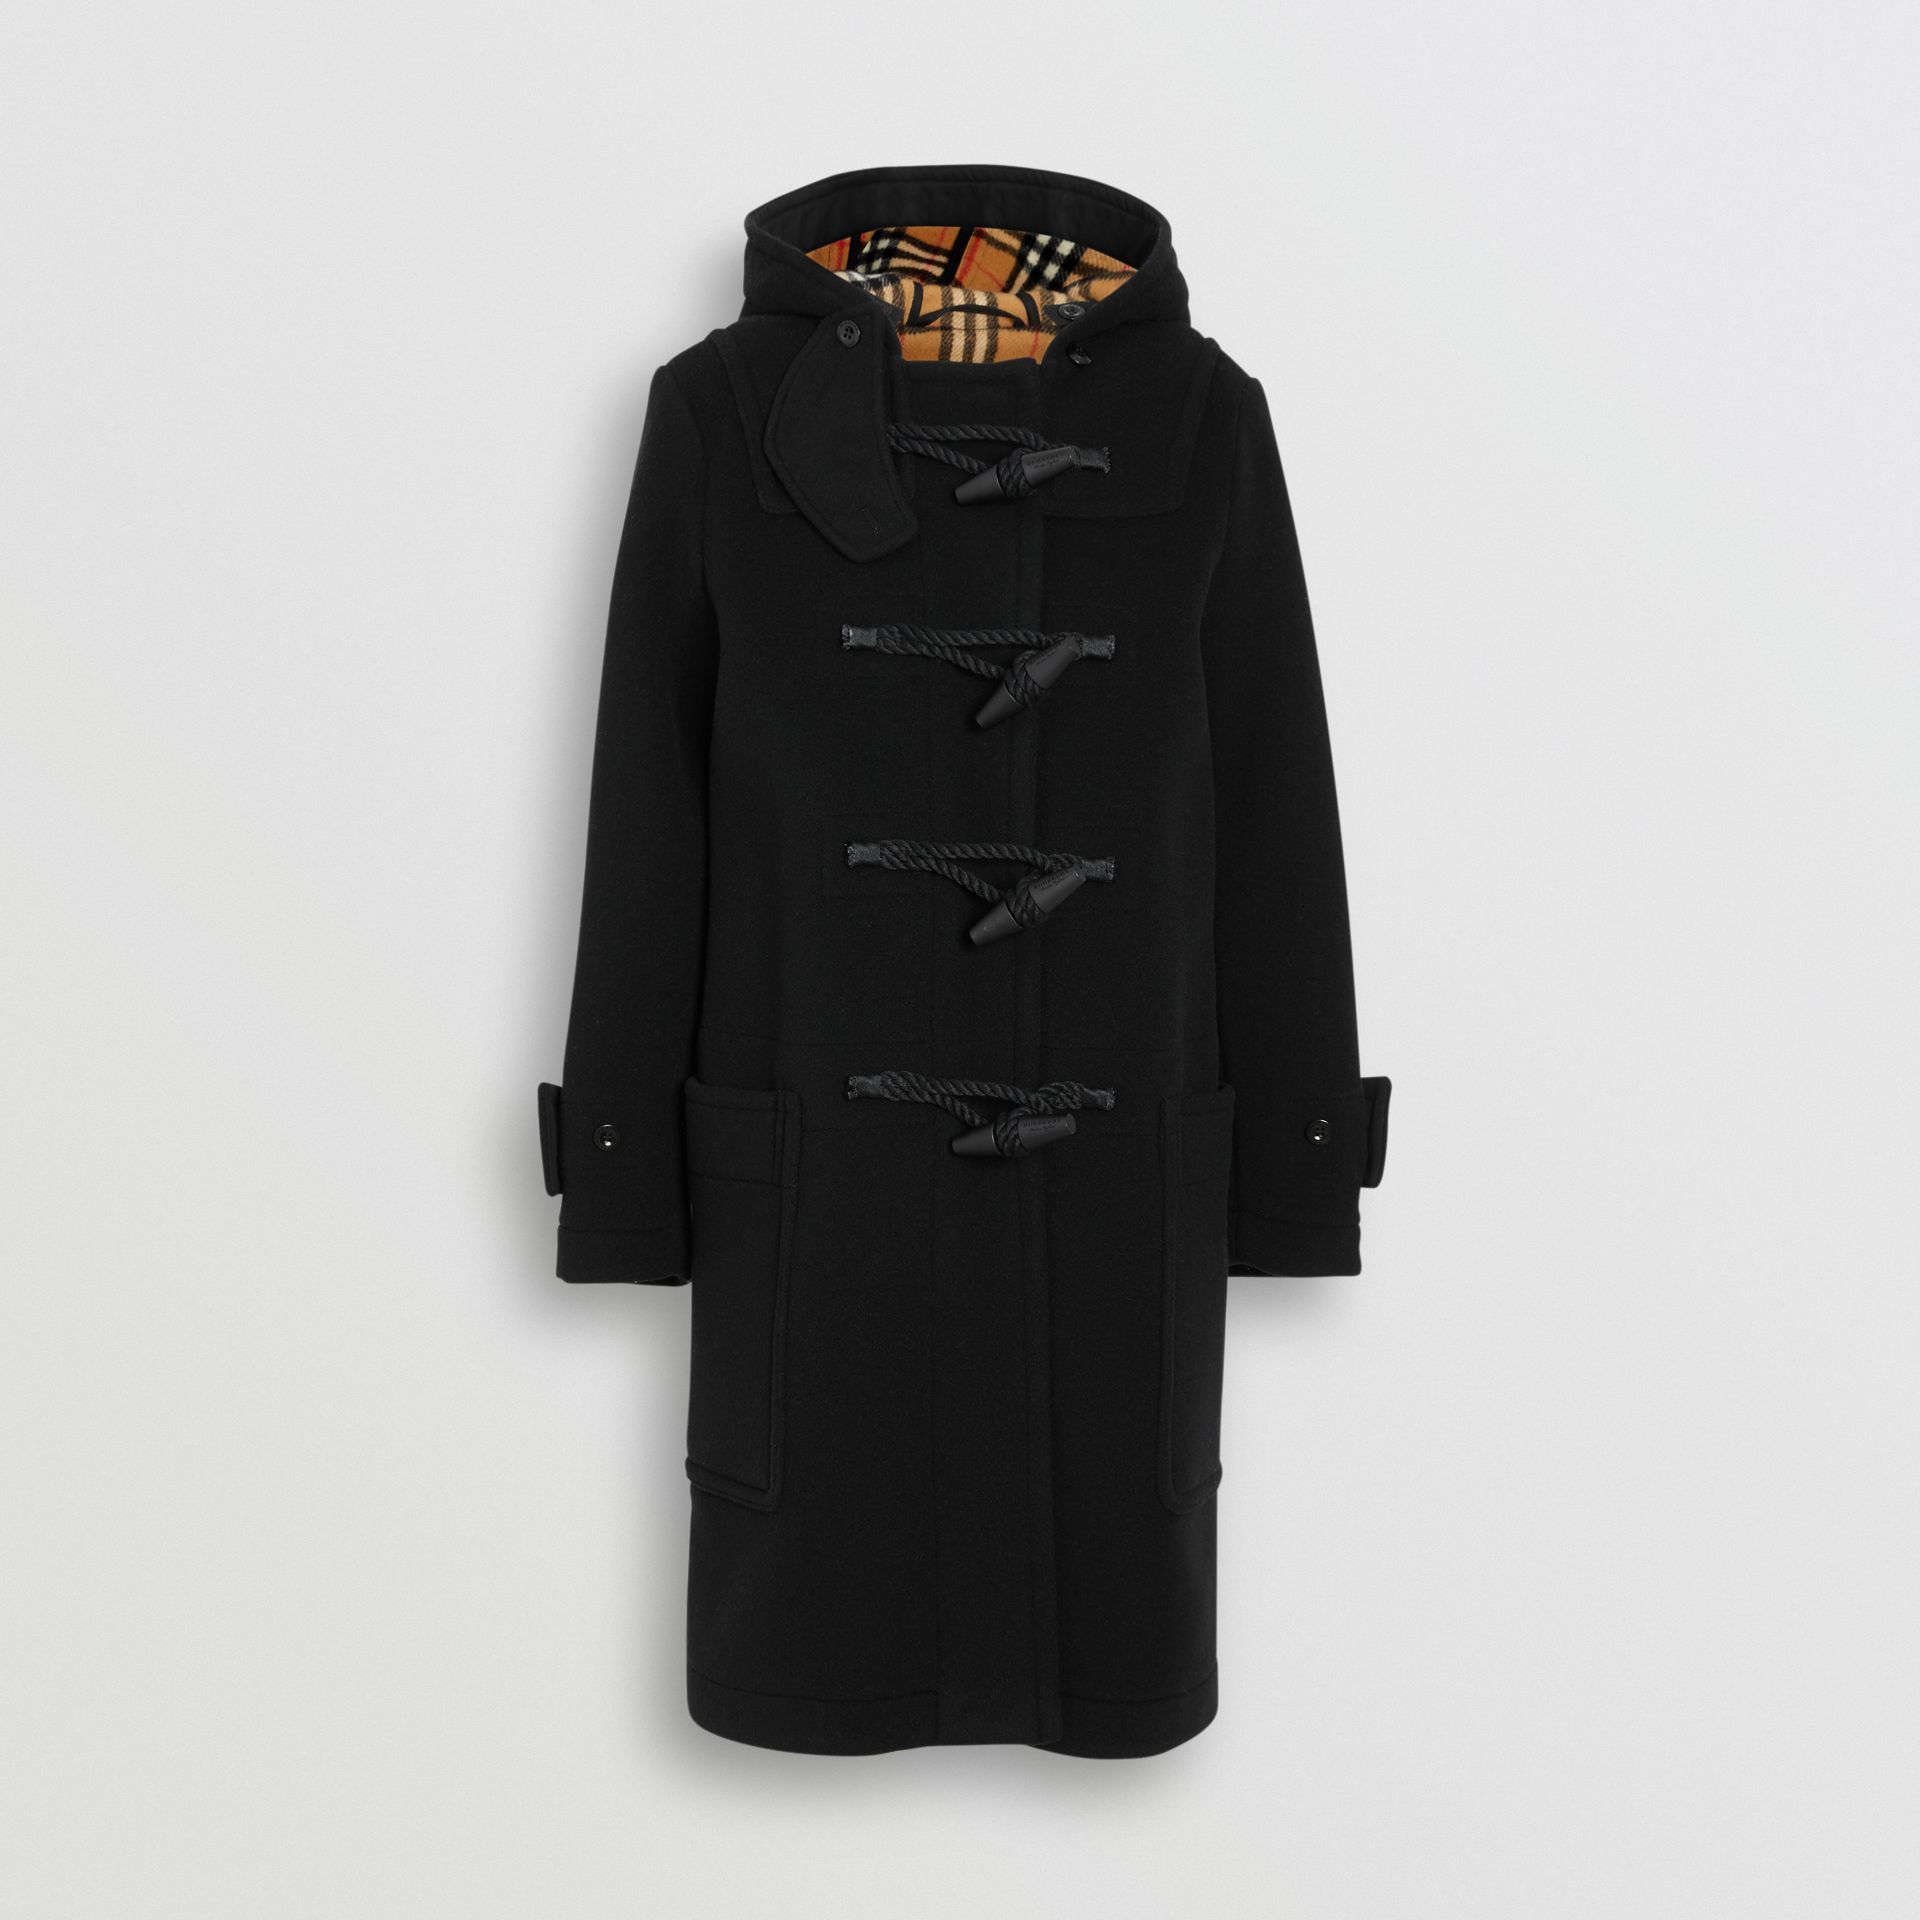 Wool Blend Duffle Coat in Black - Women | Burberry - gallery image 3